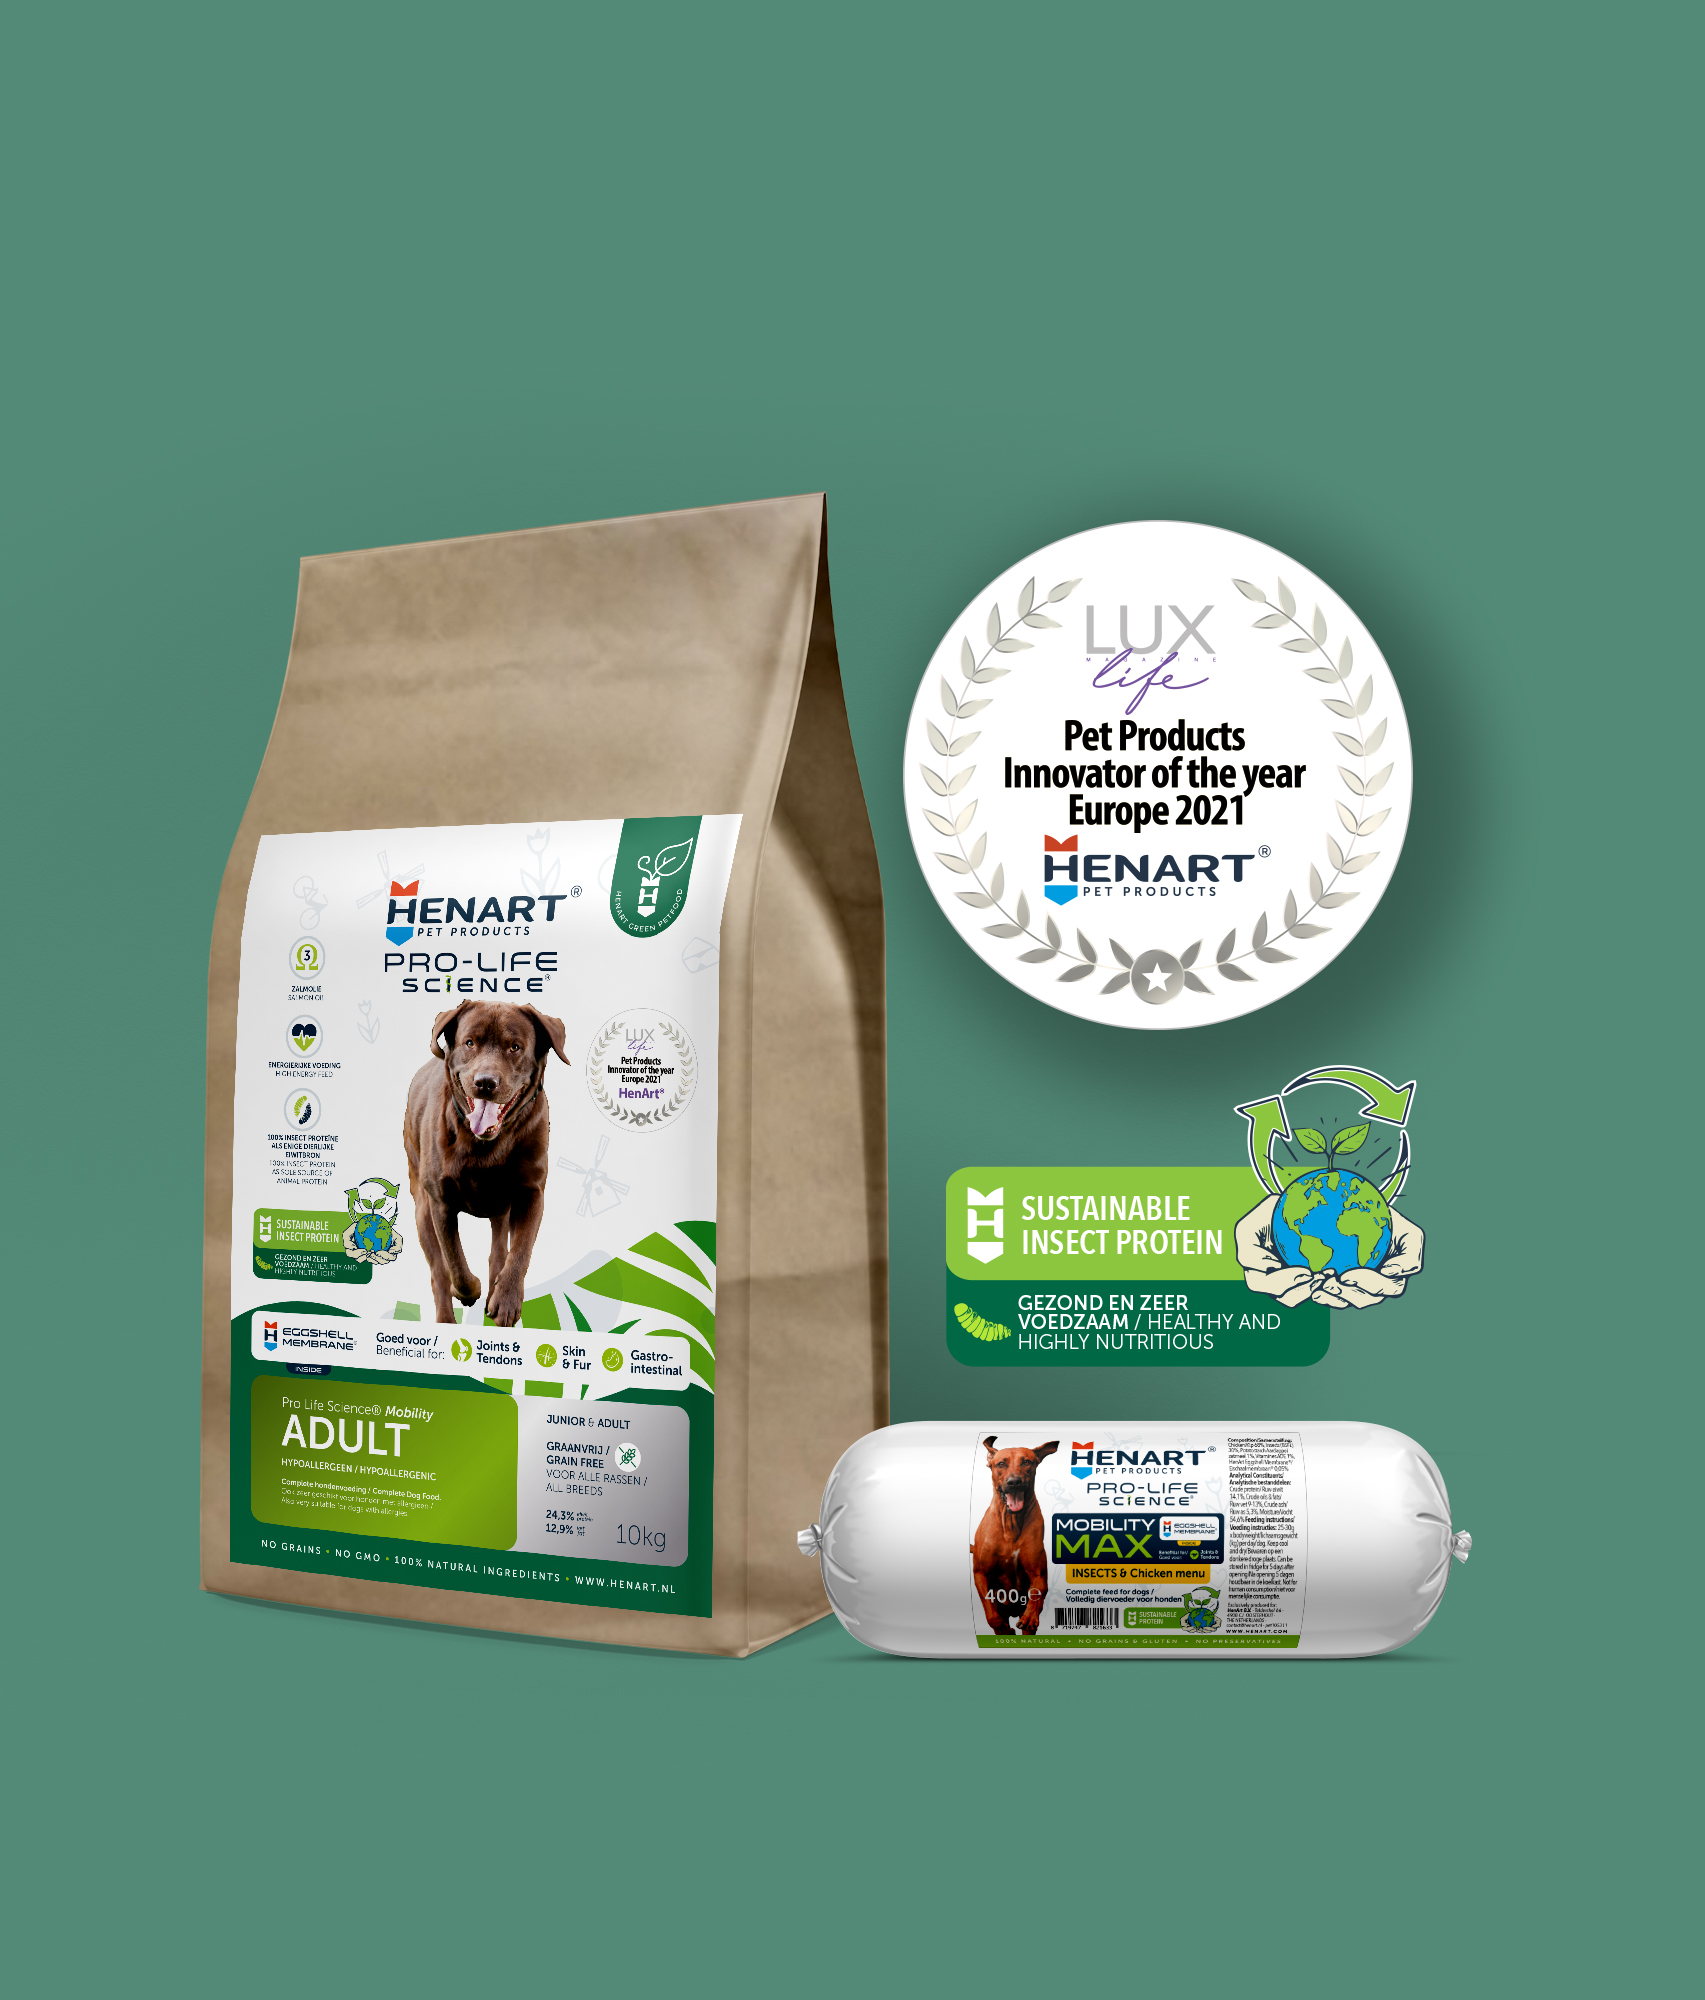 HenArt Insect Protein